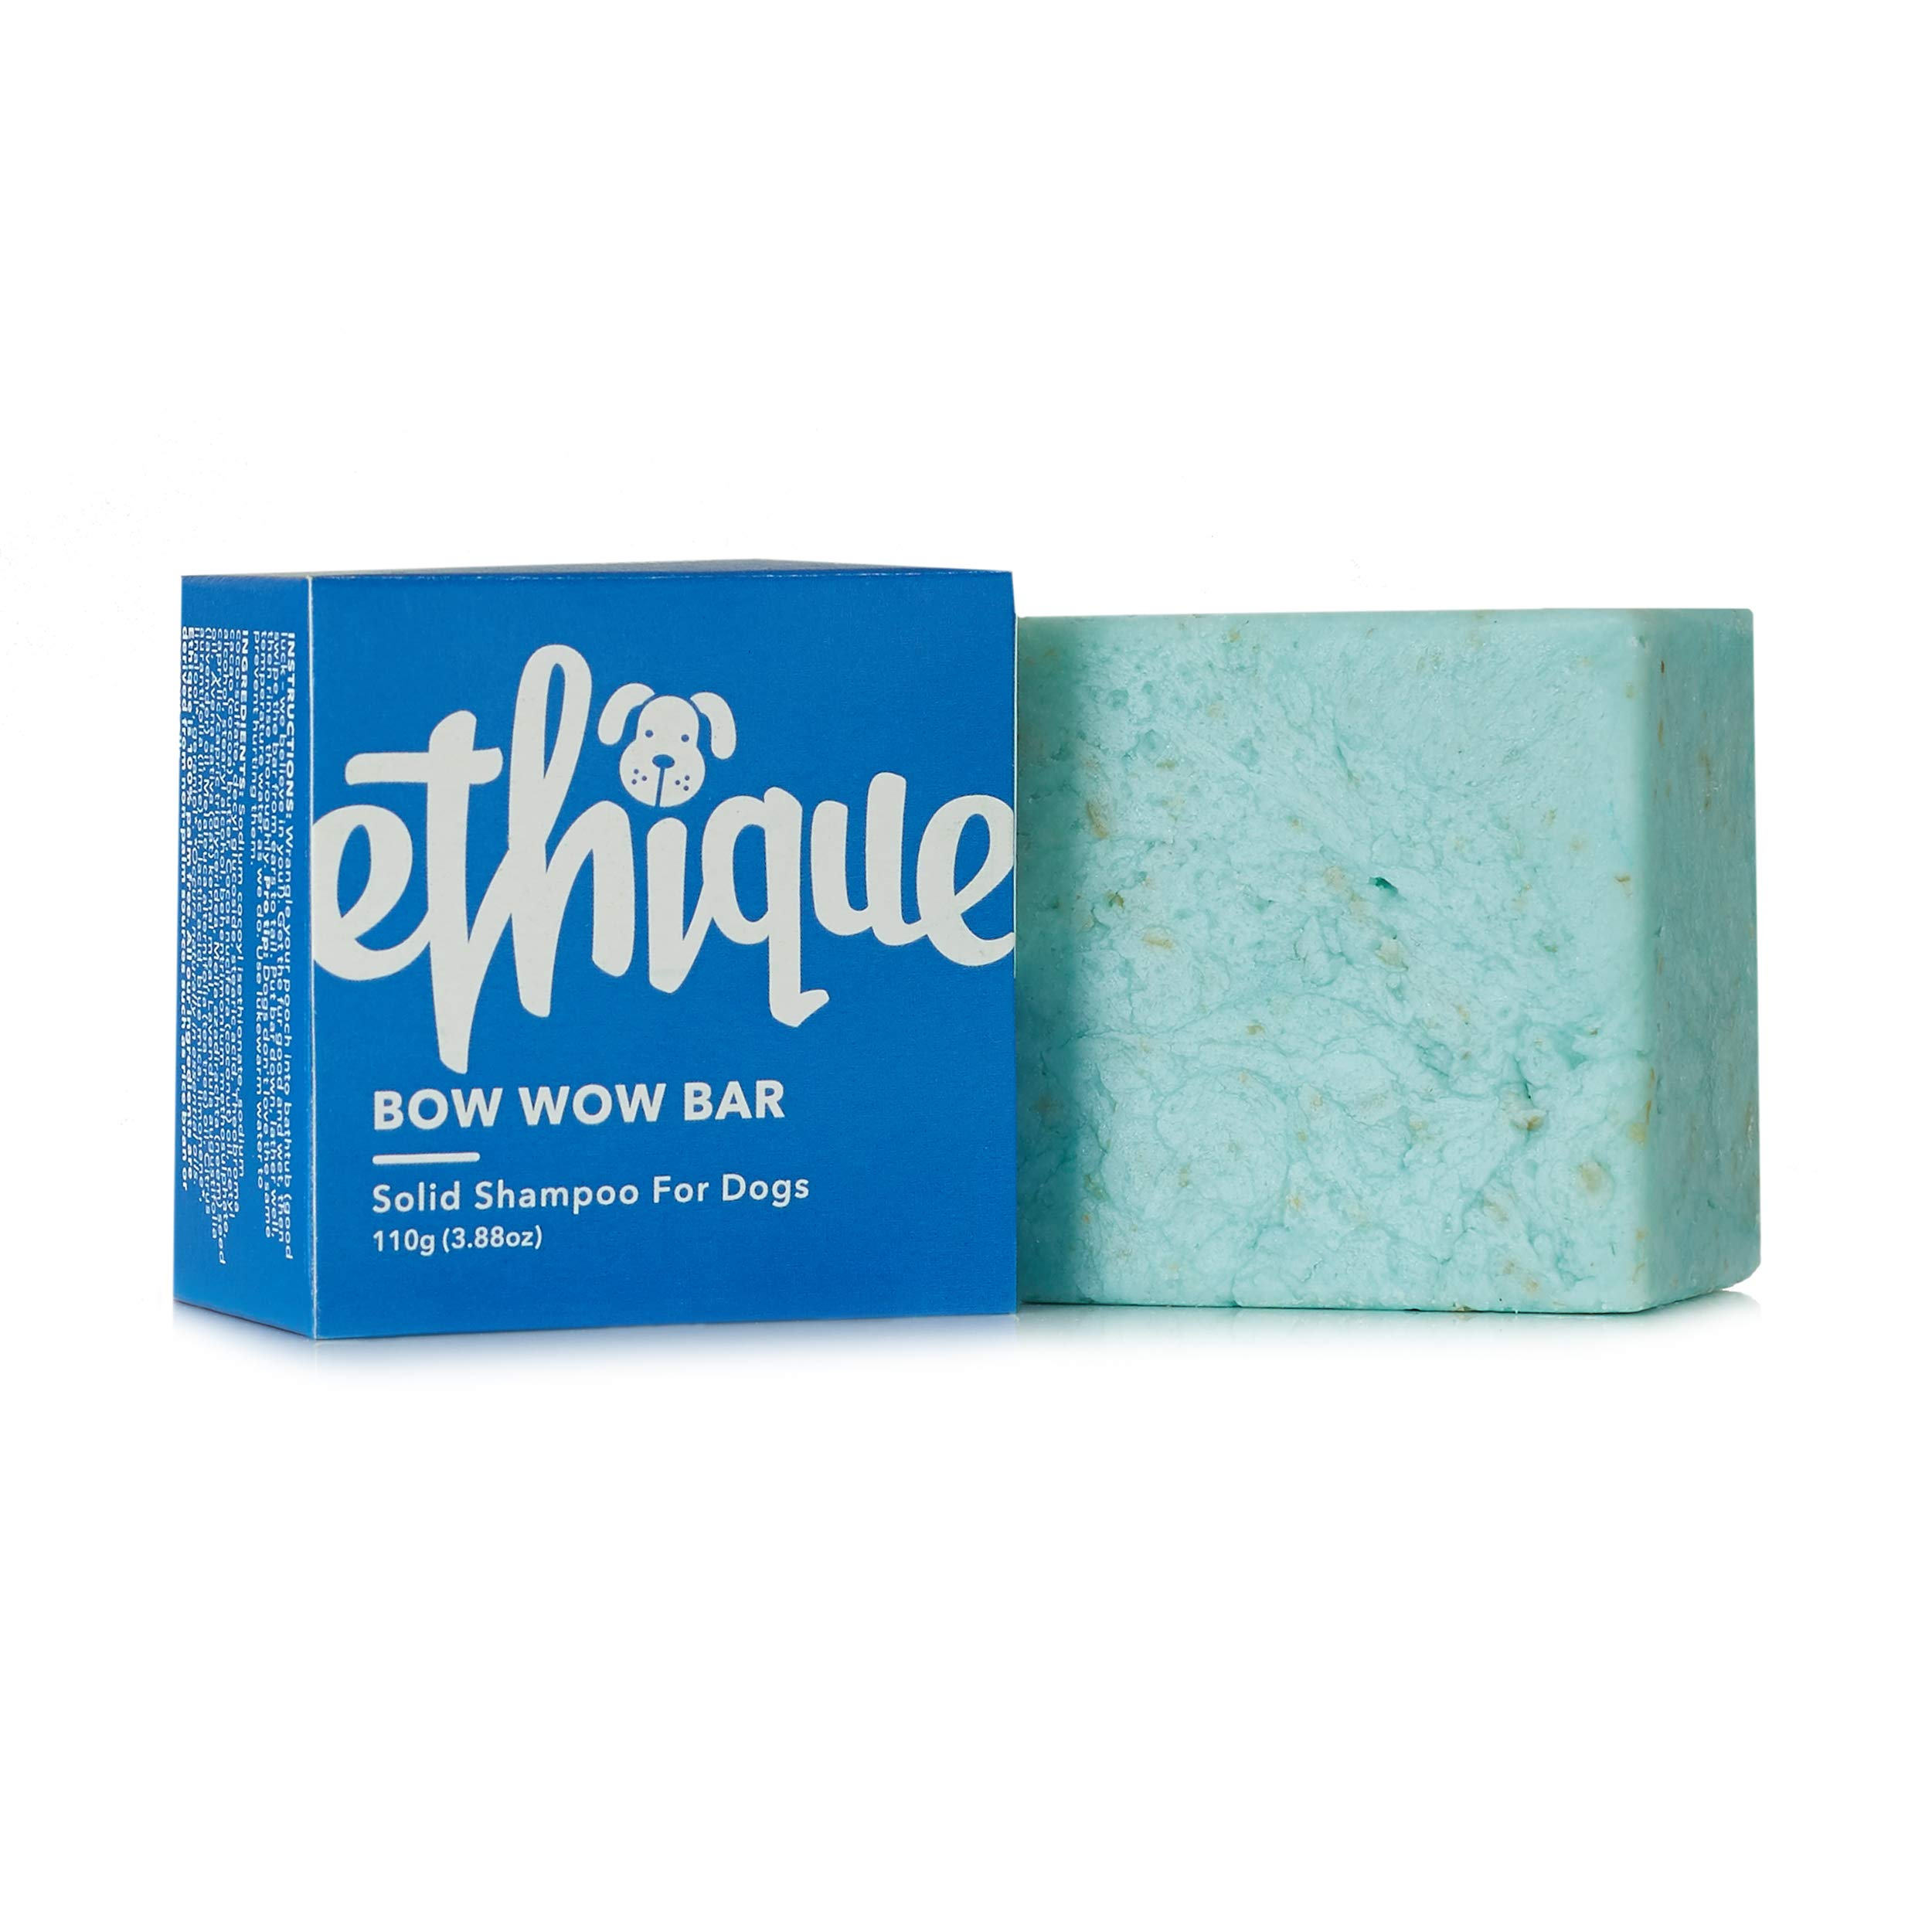 Ethique Eco-Friendly Dog Shampoo for All Dogs, Bow Wow - Plastic Free Natural Shampoo Bar for Dogs, 100% Compostable and Waste Free, 3.88 oz